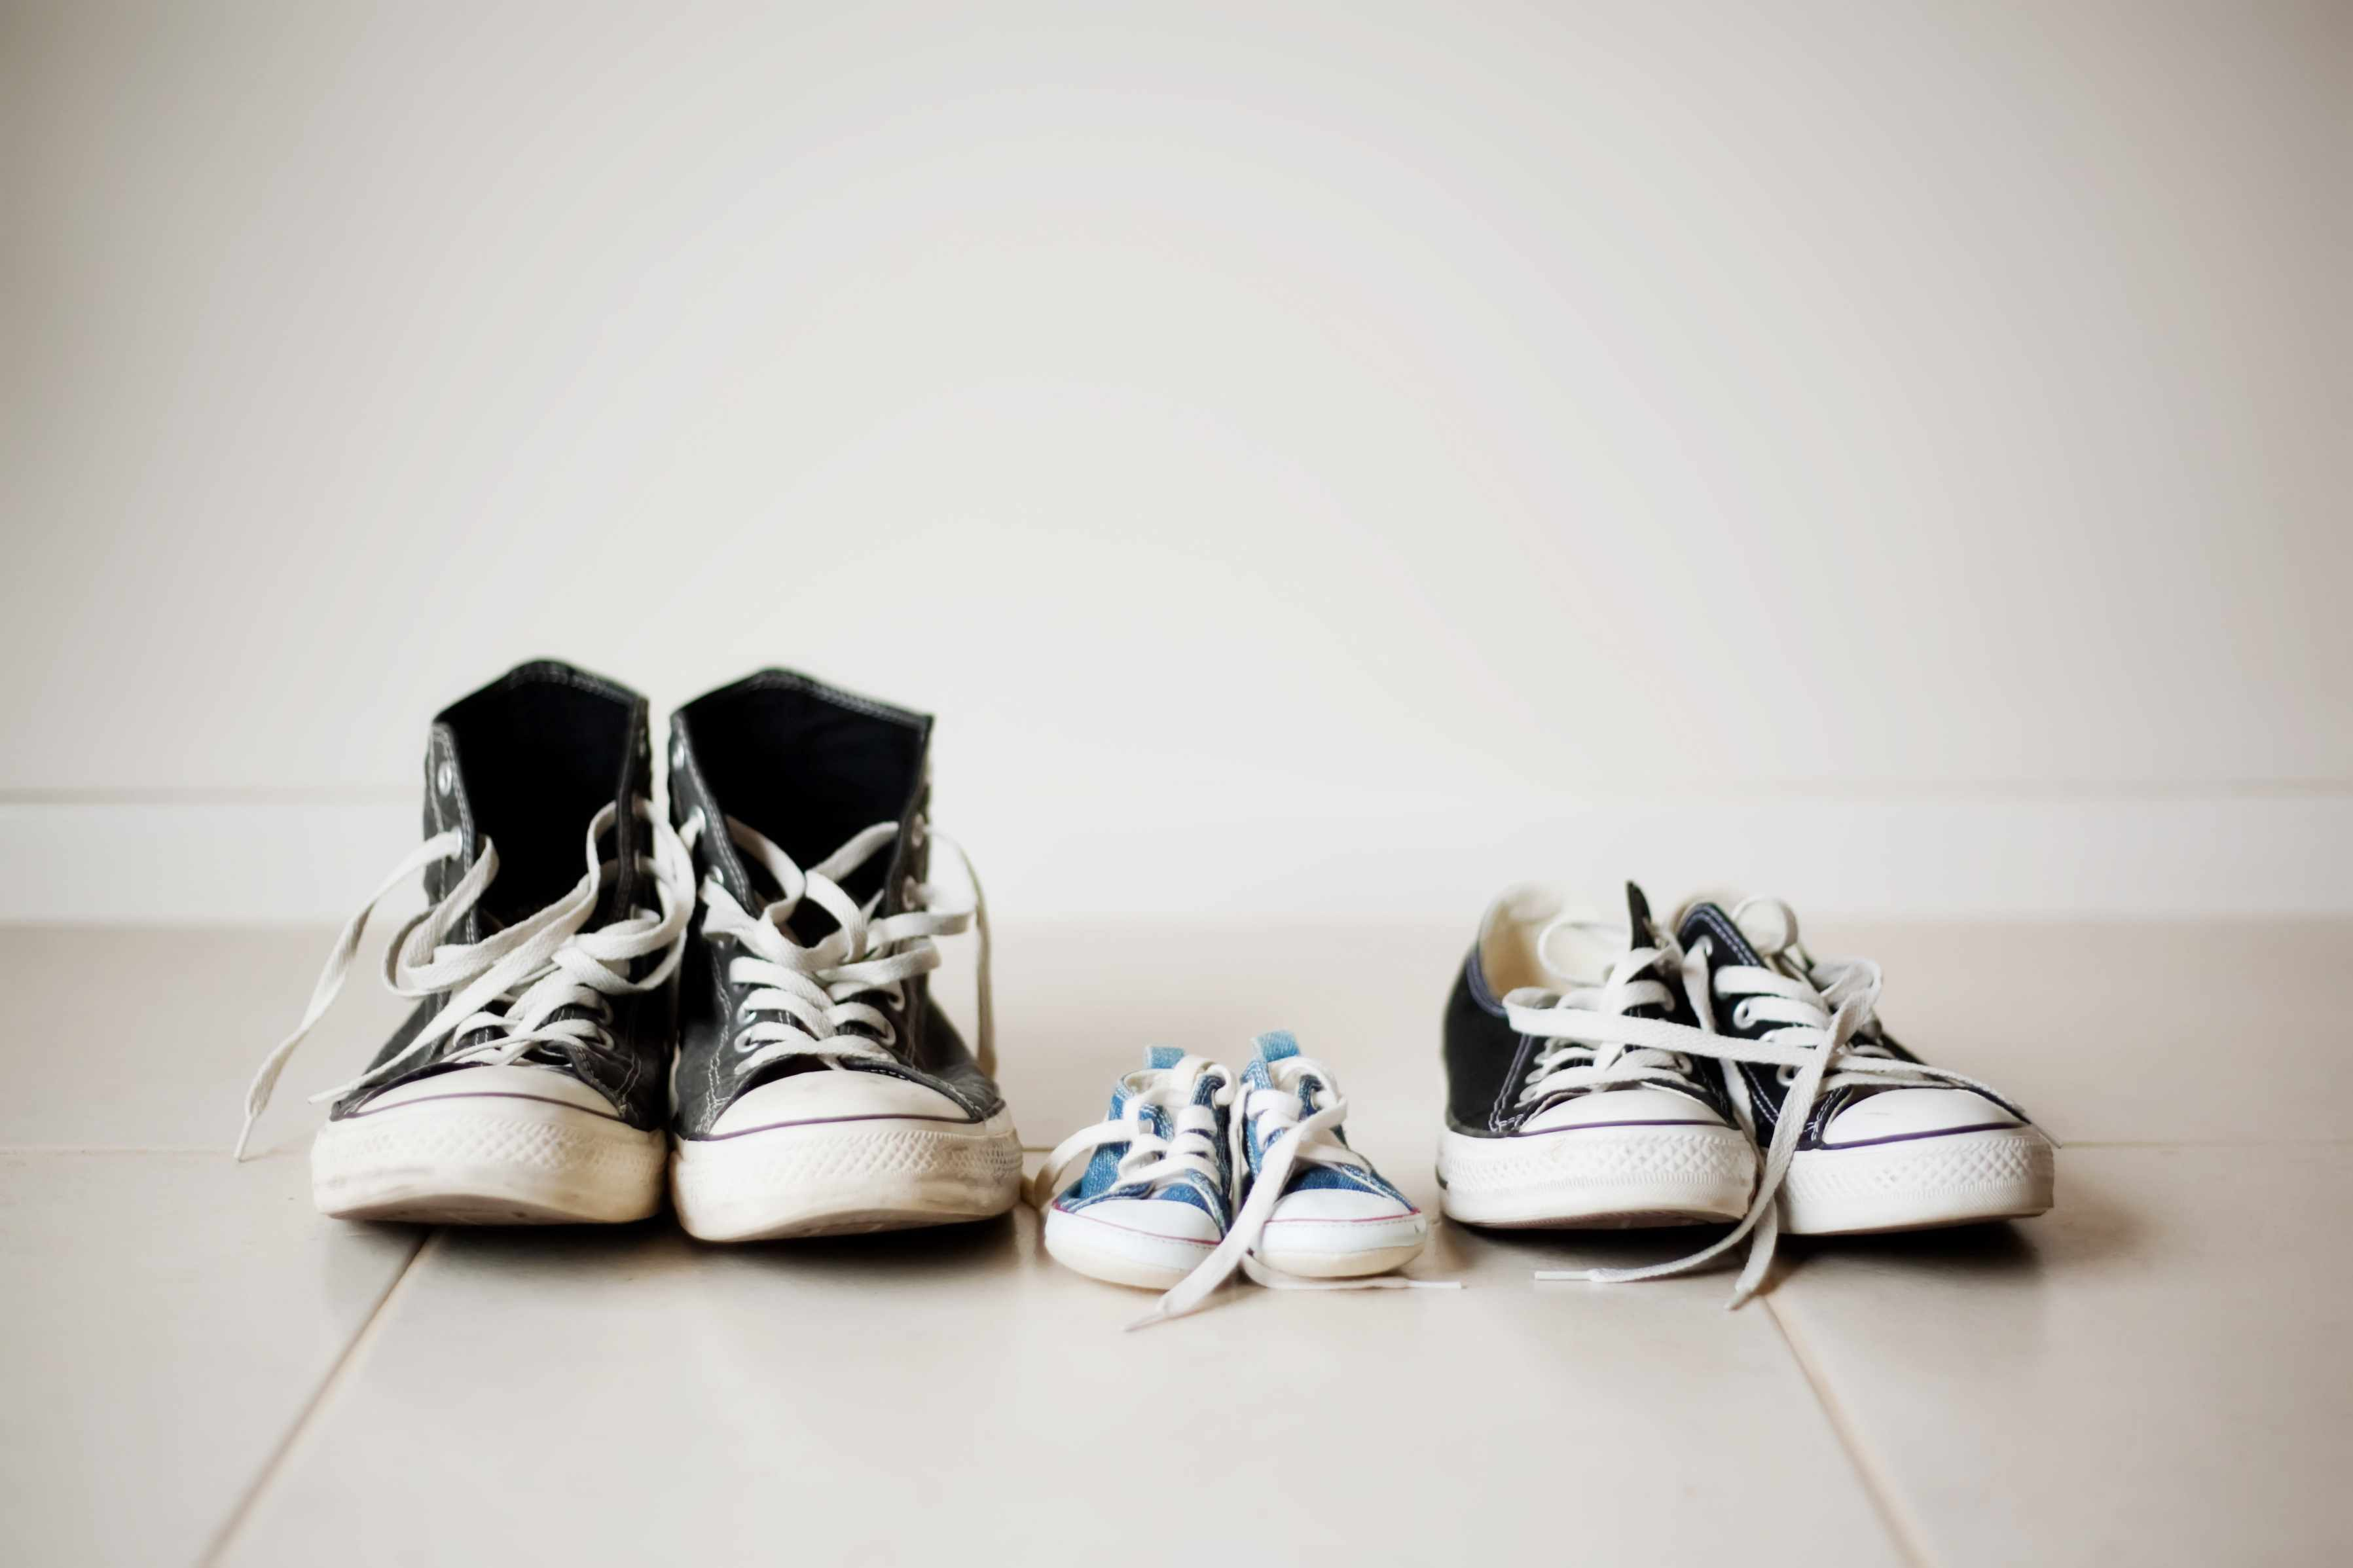 row of three pairs of shoes in varying sizes